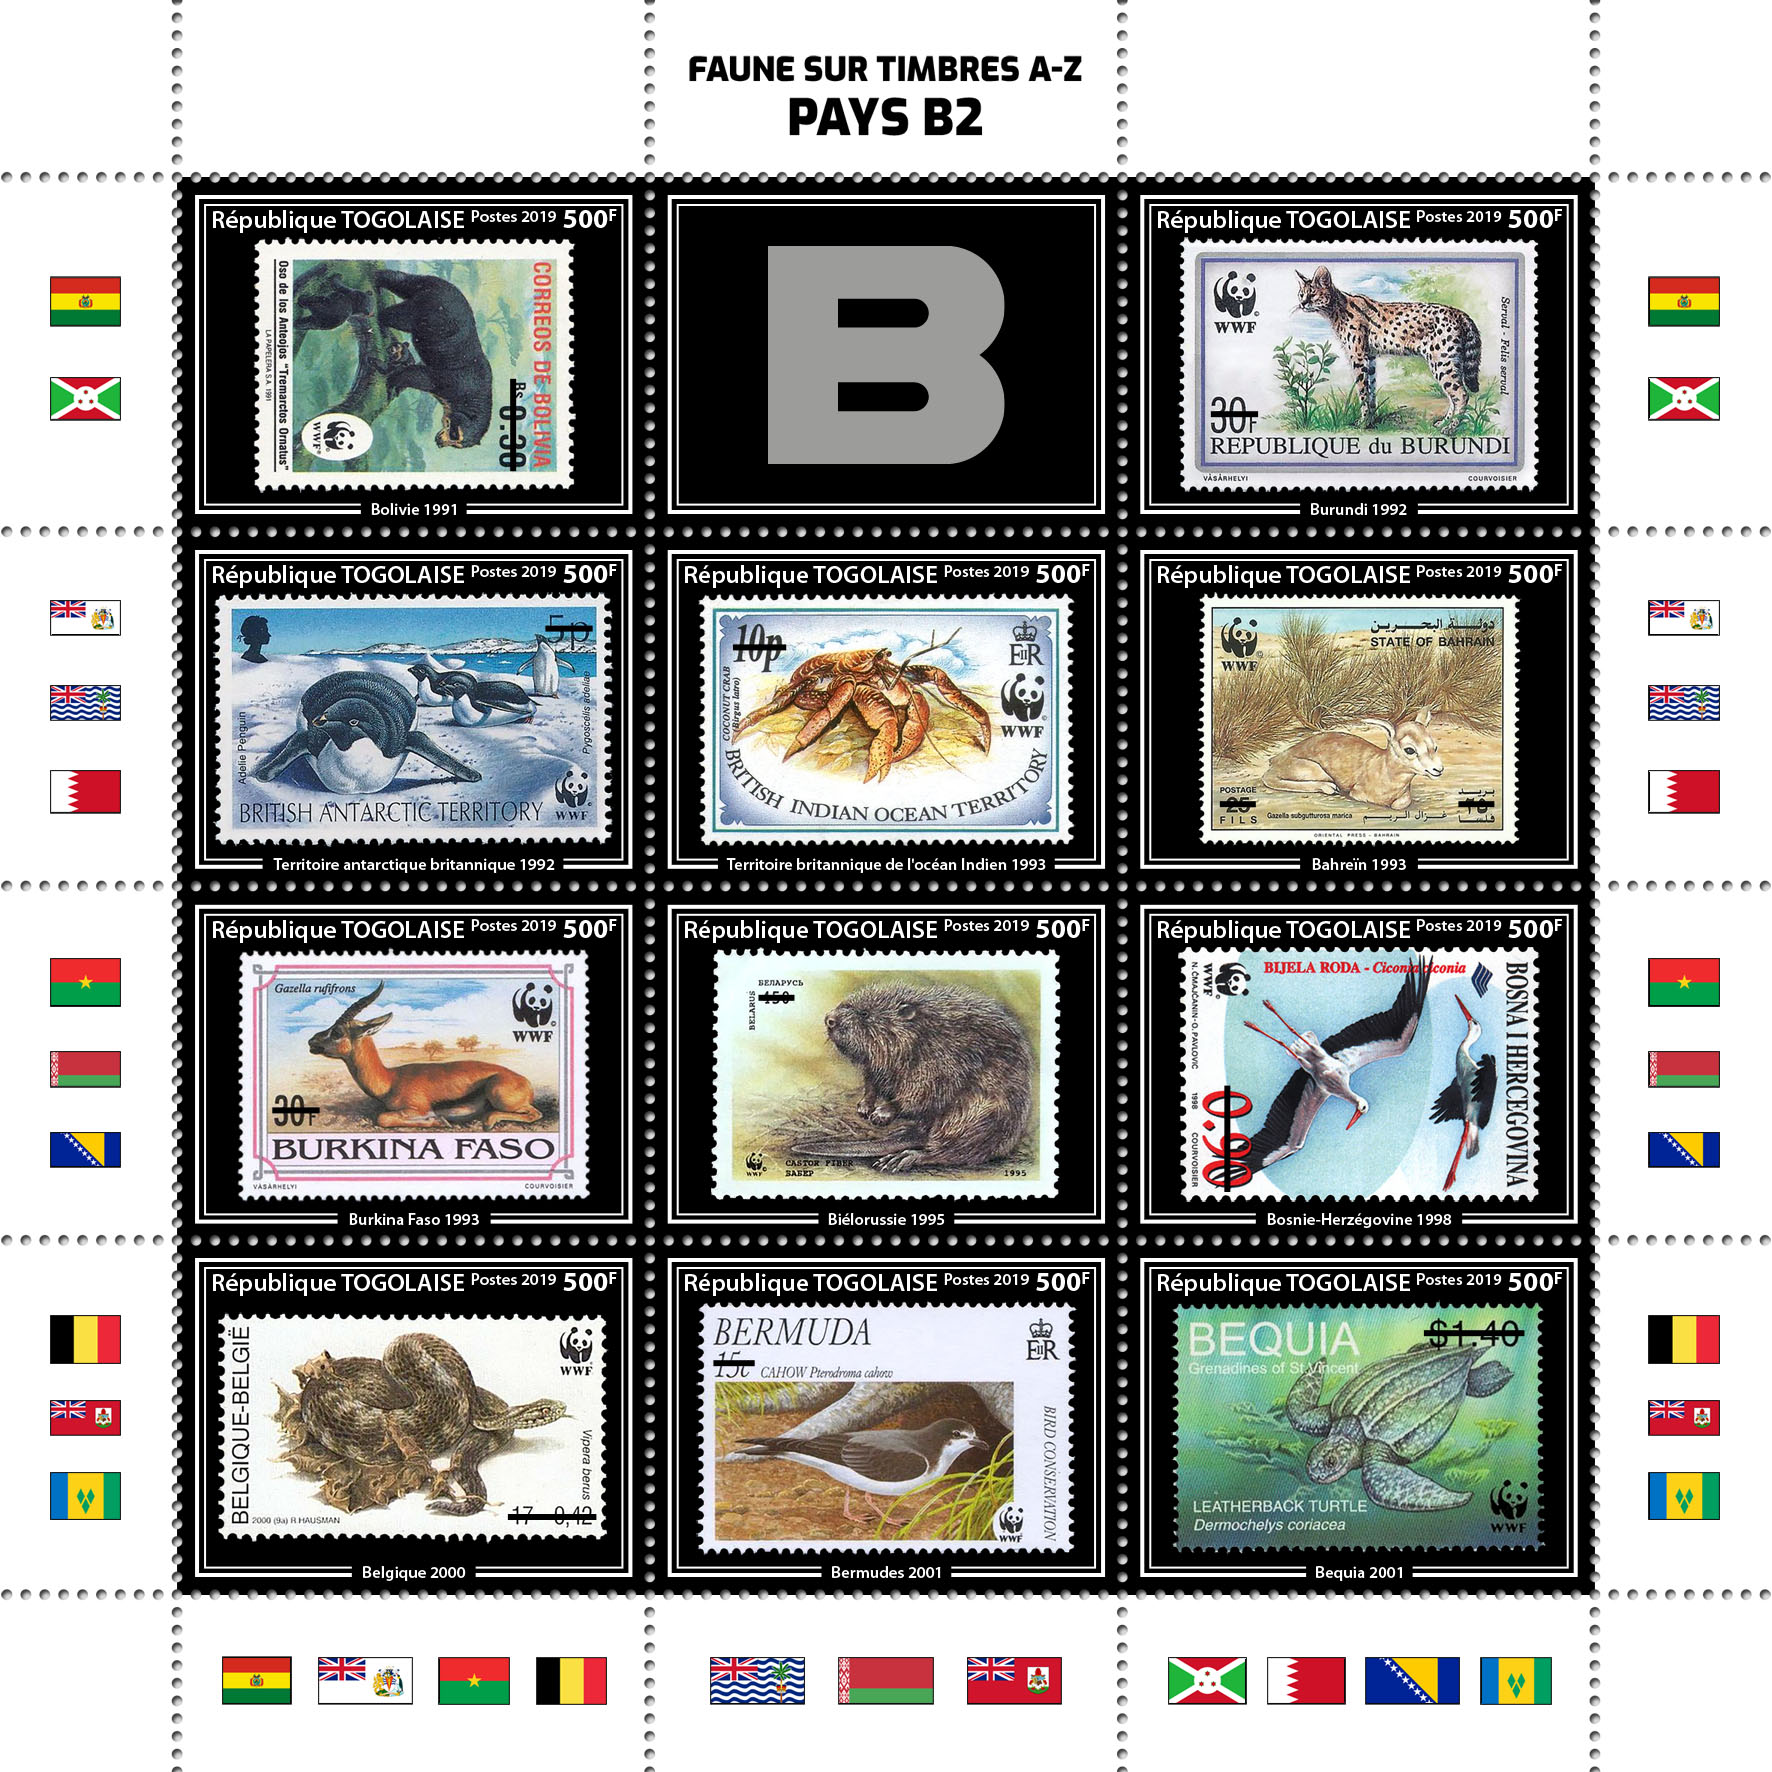 Stamps on stamps 11v – 02 - Issue of Togo postage stamps